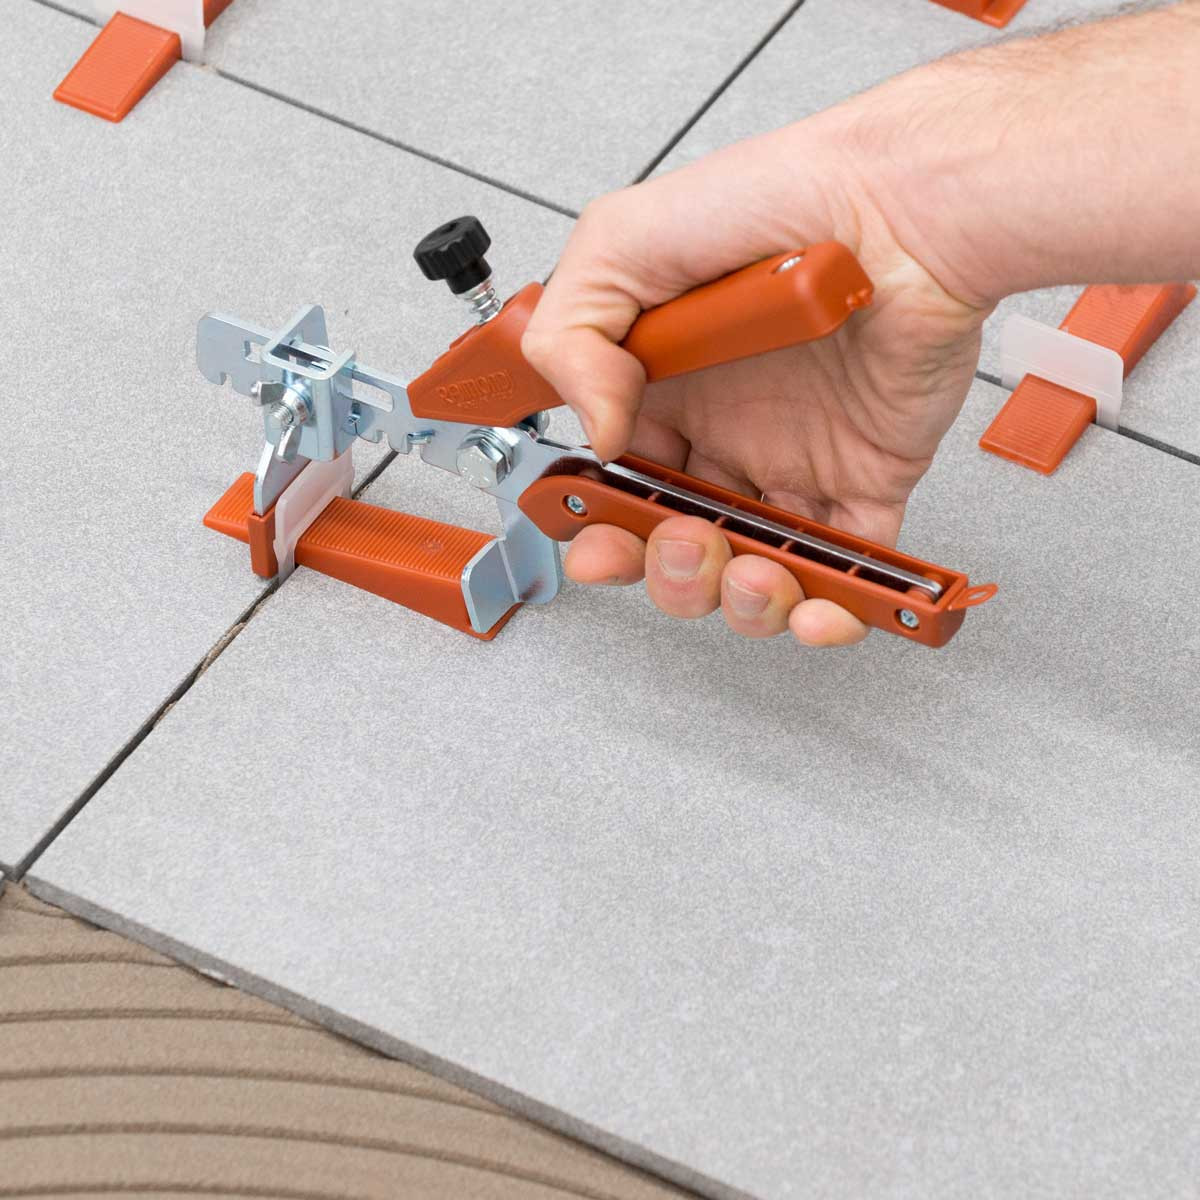 raimondi 1/32in clip layout view with floor pliers